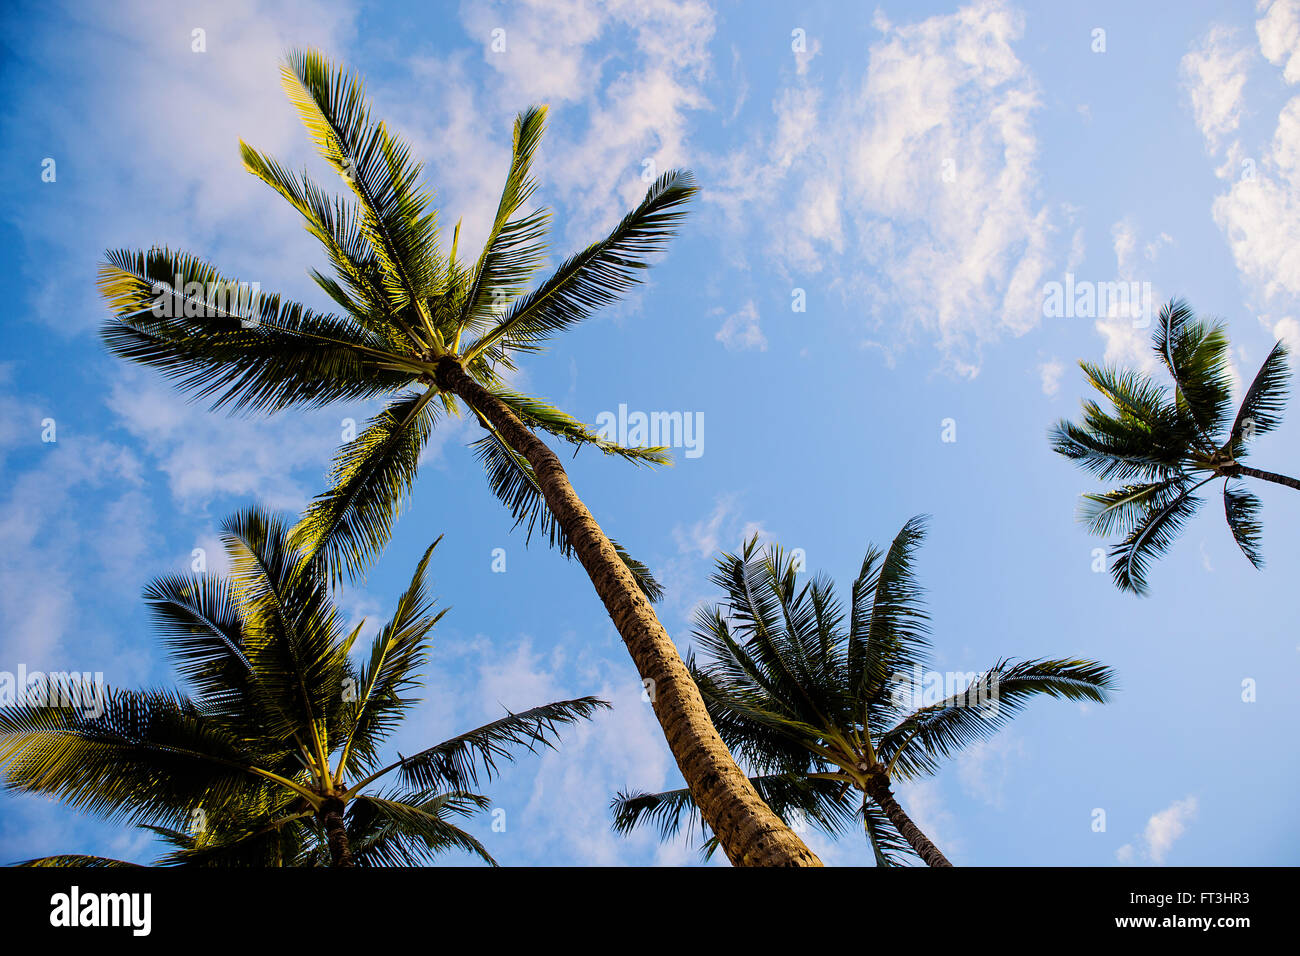 Palm trees from below under blue sky - Stock Image